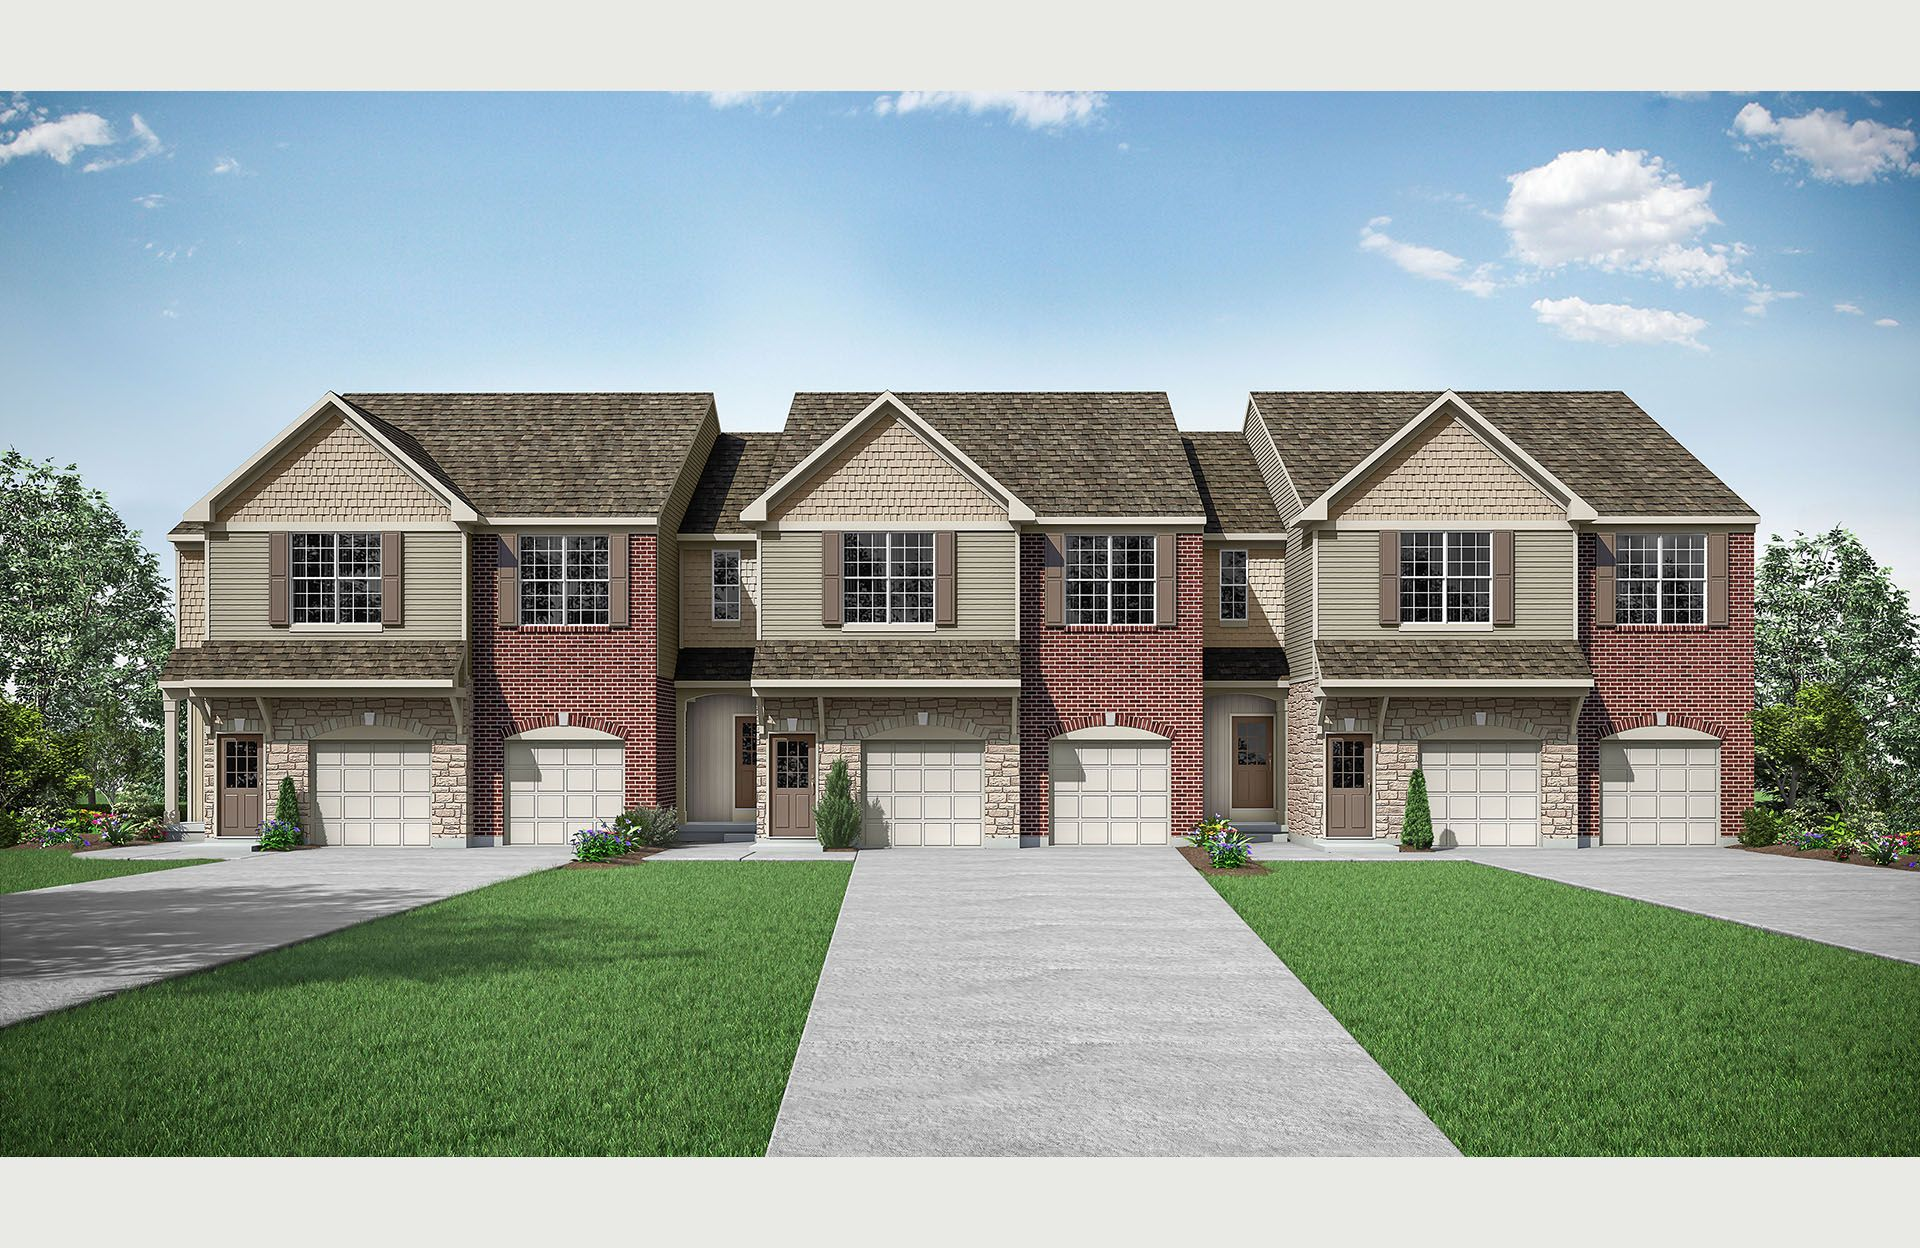 Real Estate at Fairways at Meadowood, Burlington in Boone County, KY 41005